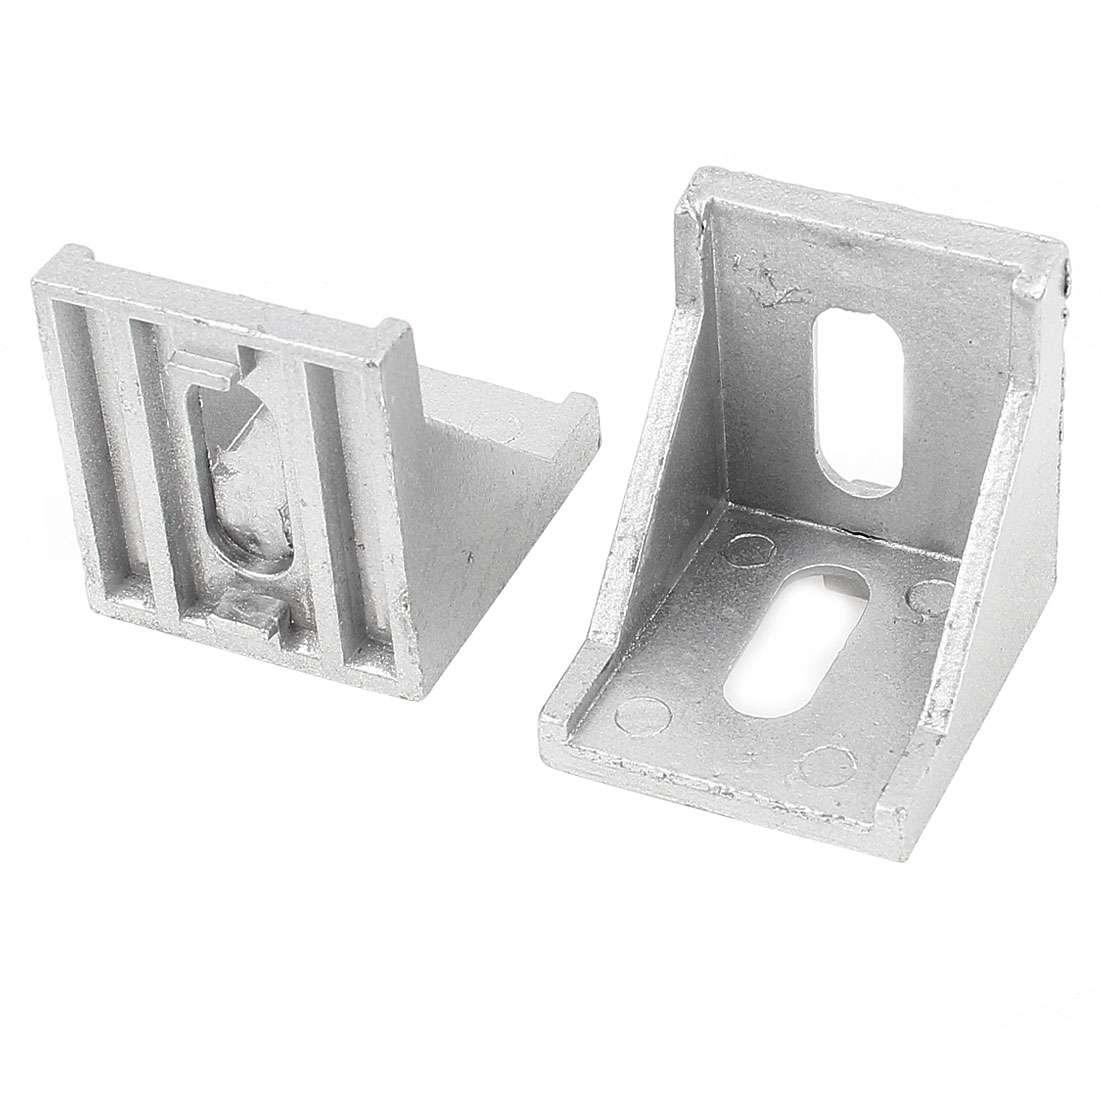 2 Pcs Silver Tone Metal 90 Degree Door Angle Bracket 40mm x 40mm